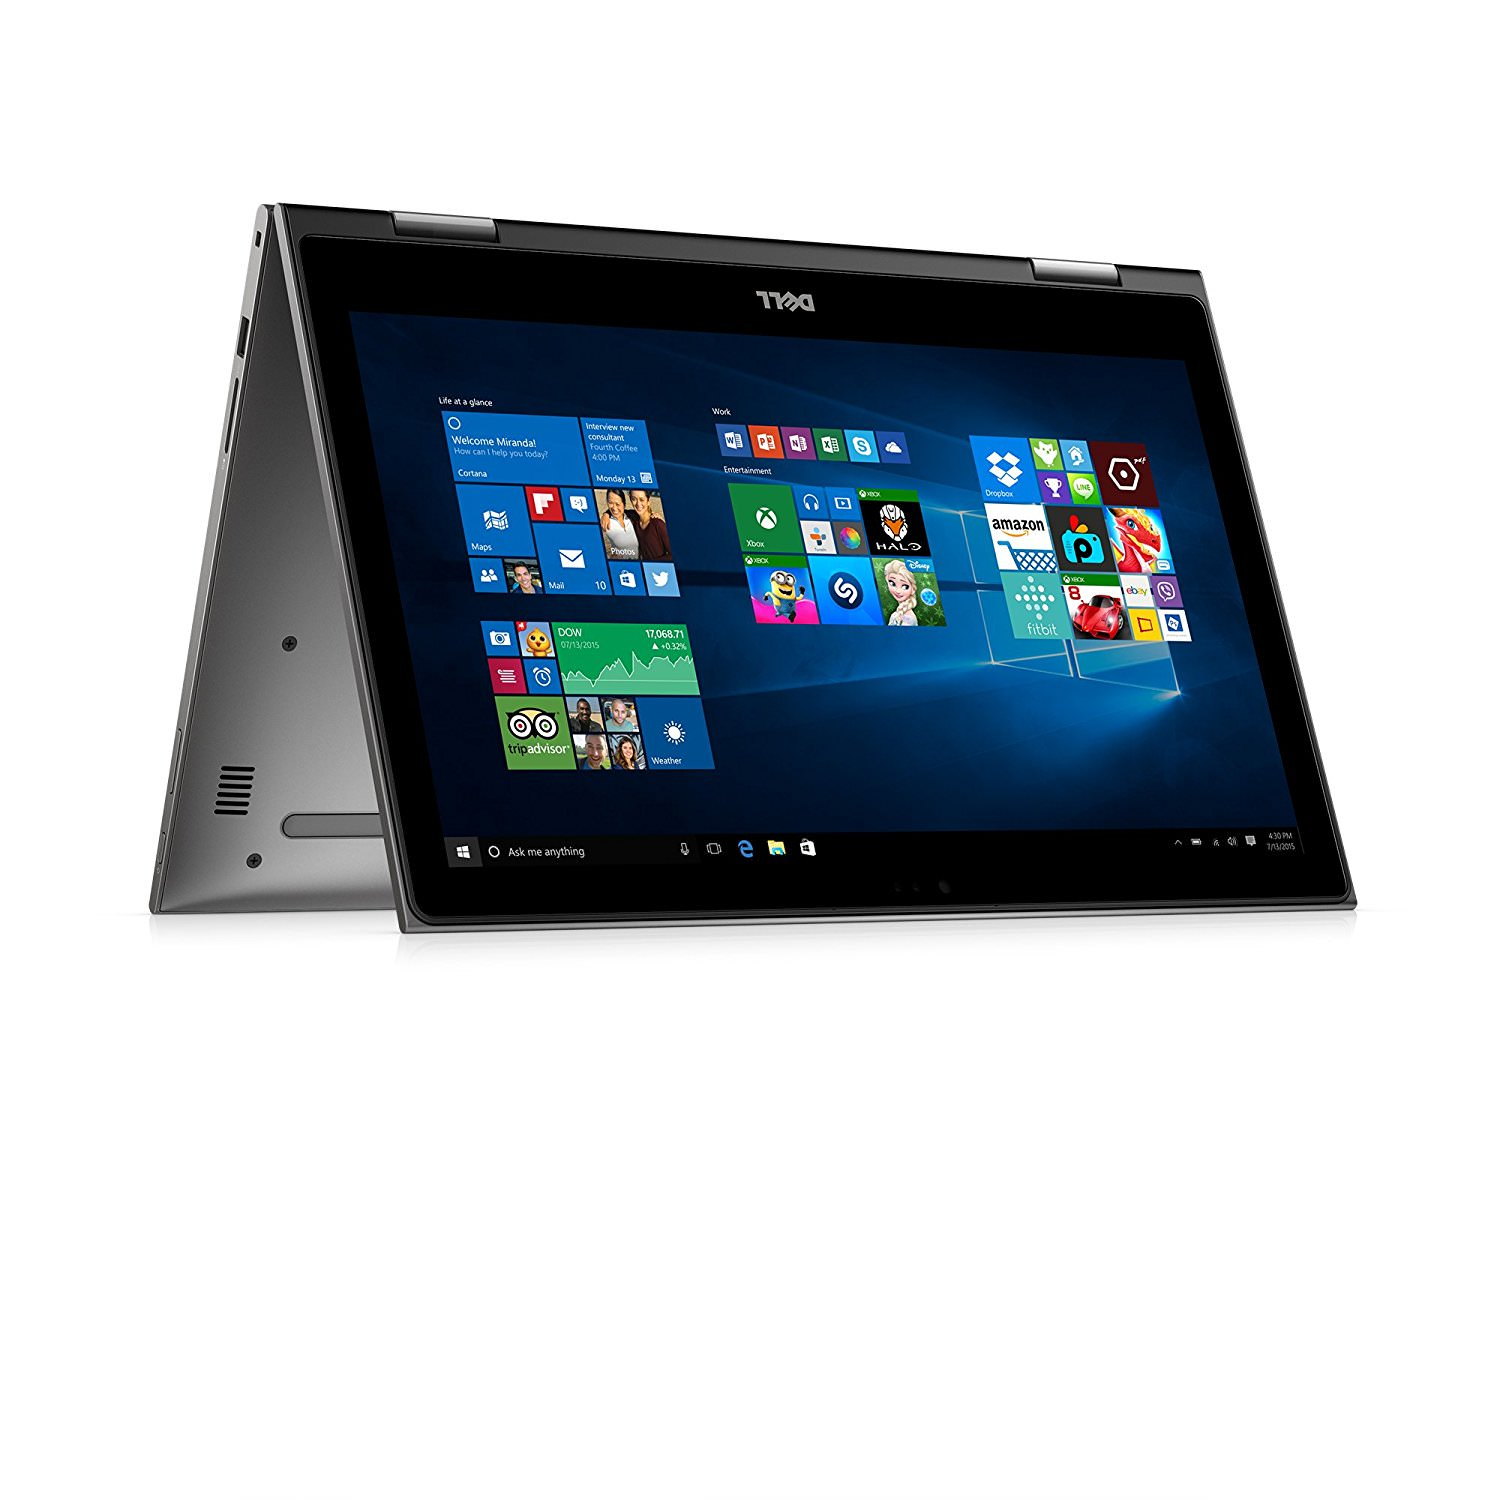 Inspiron 15 5000 2-in-1, i5579-5930GRY, 15.6-inch FHD Touch (1920 x 1080), Intel Core i5-8250U, 8GB 2400MHz DDR4, 1 TB 5400 RPM HDD, Intel UHD Graphics 620